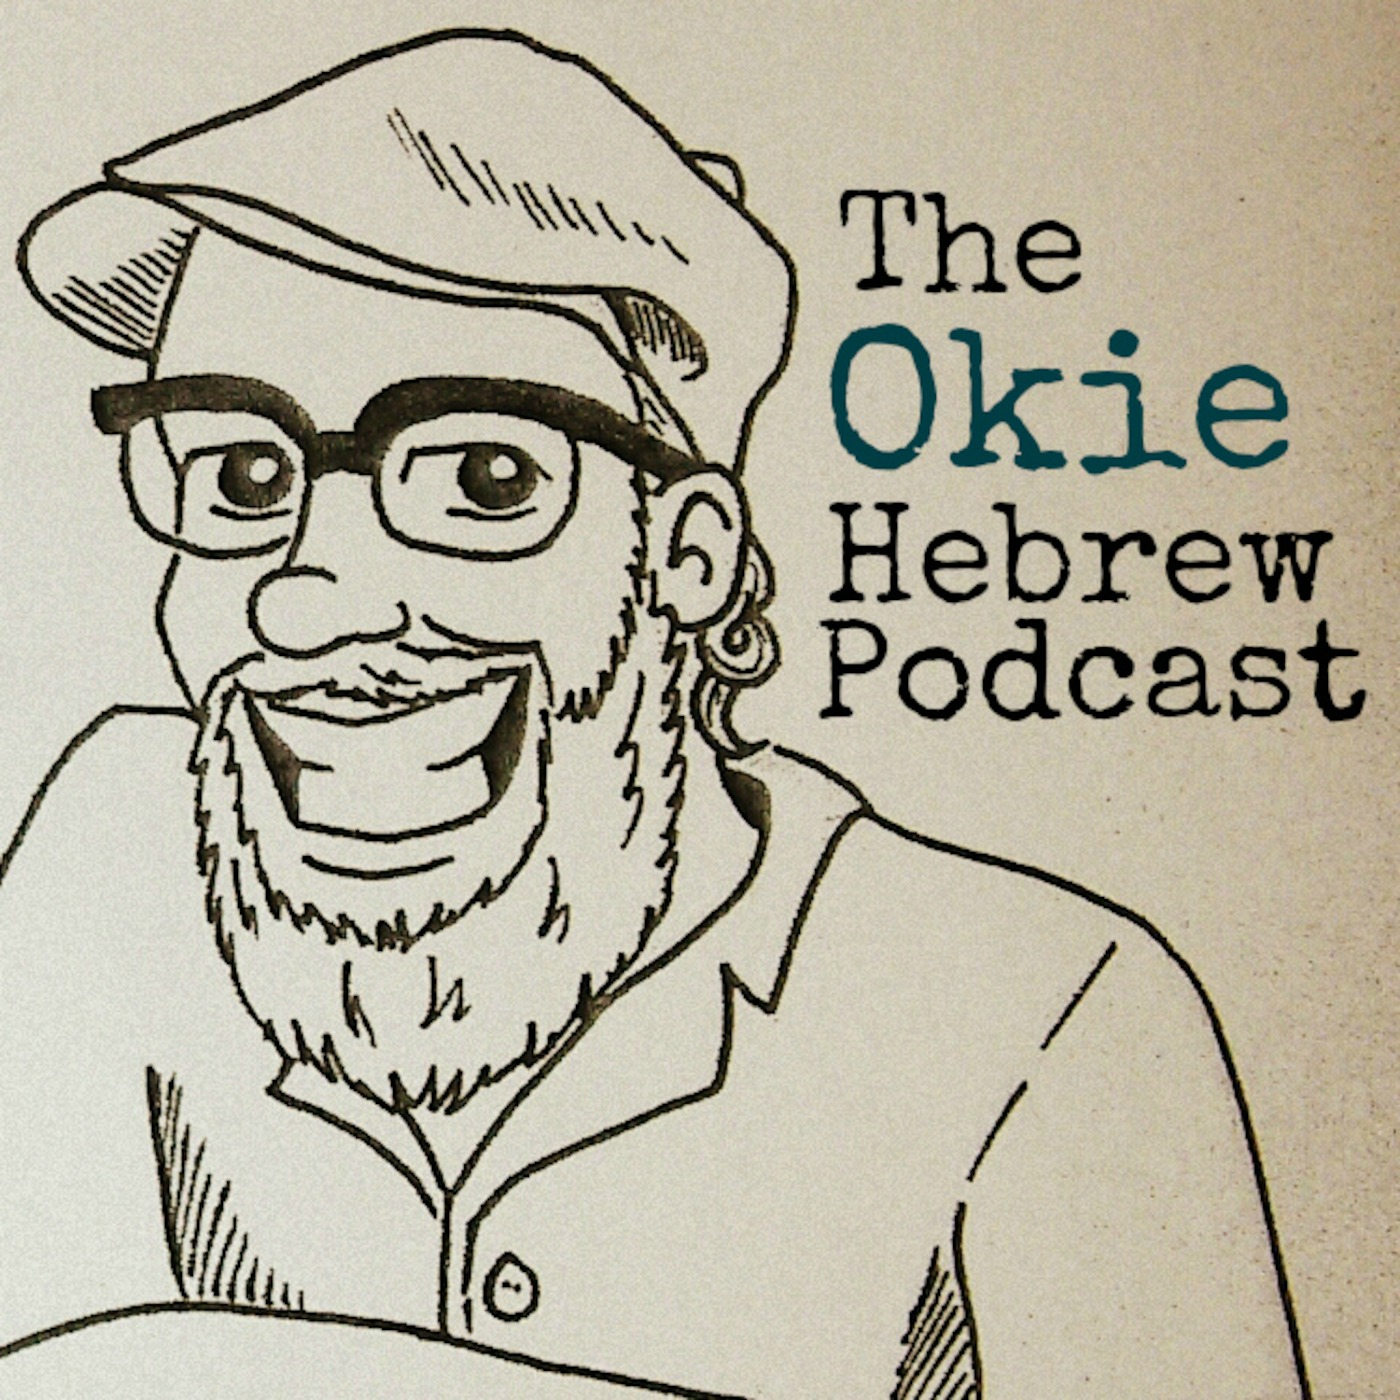 The Okie Hebrew Podcast